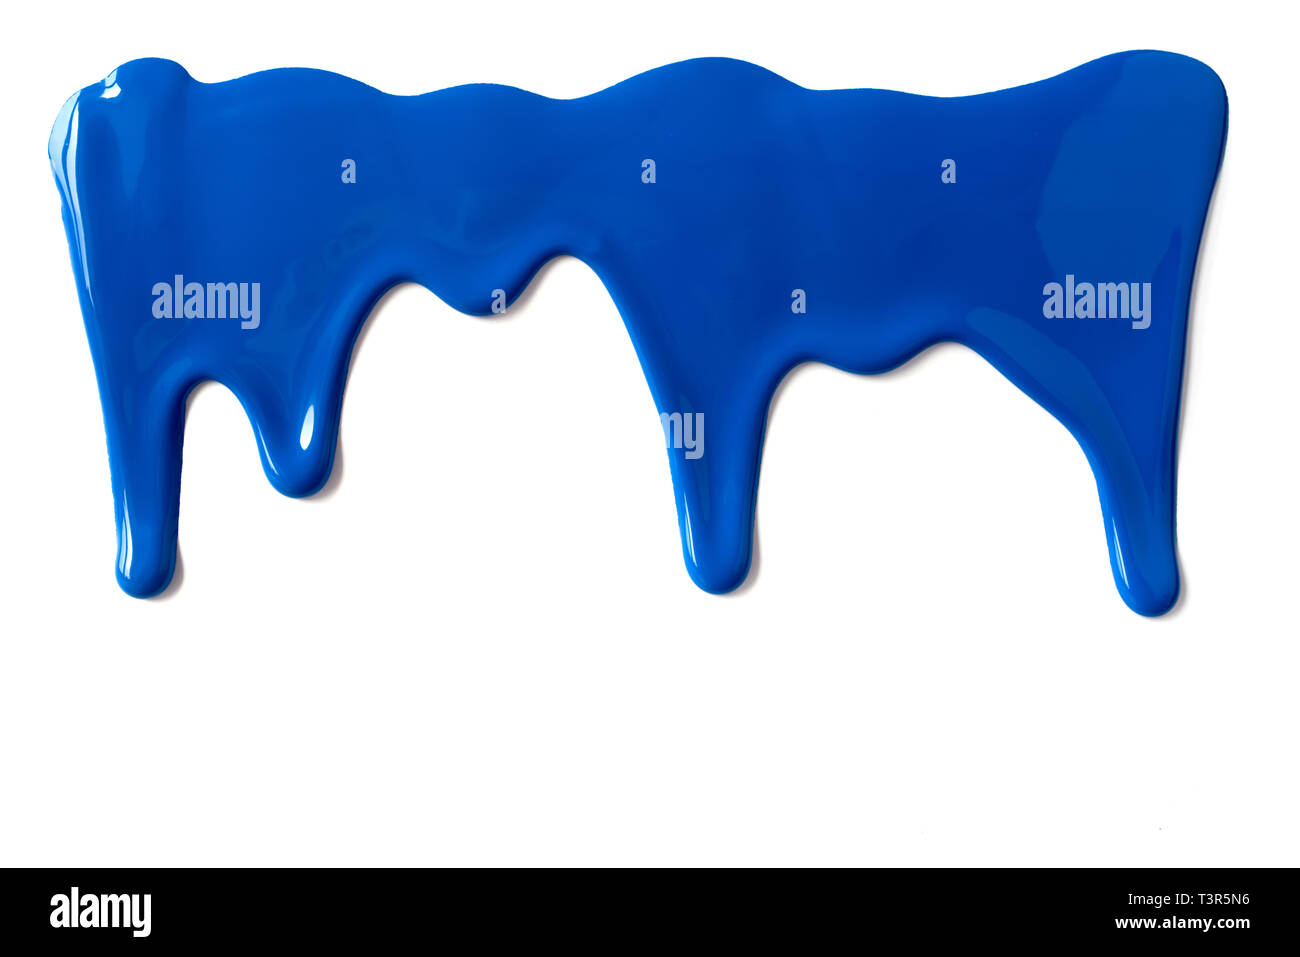 Blue paint leaking down white background. Close up. - Stock Image